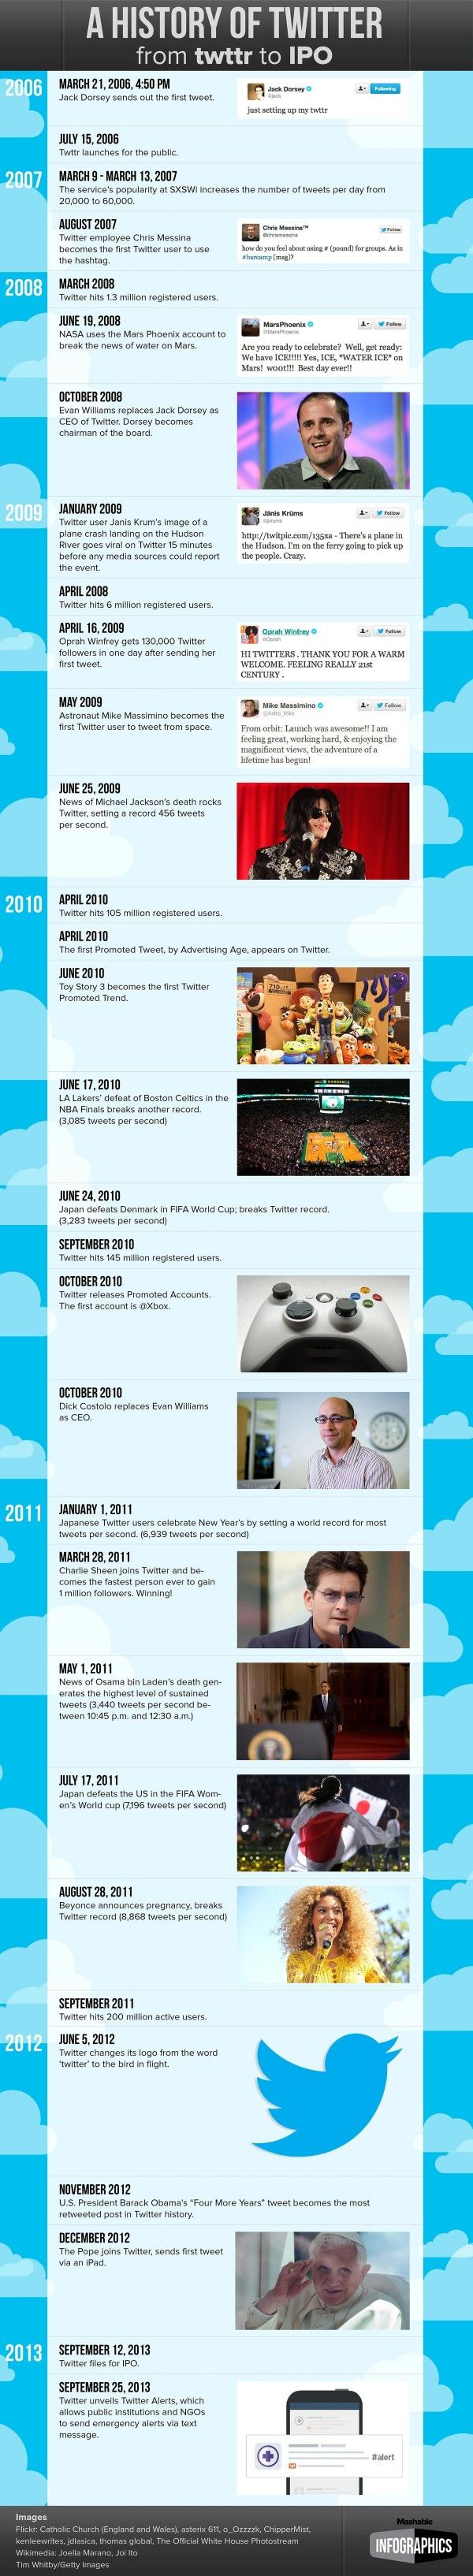 A year-by-year history of Twitter from 2006 to present